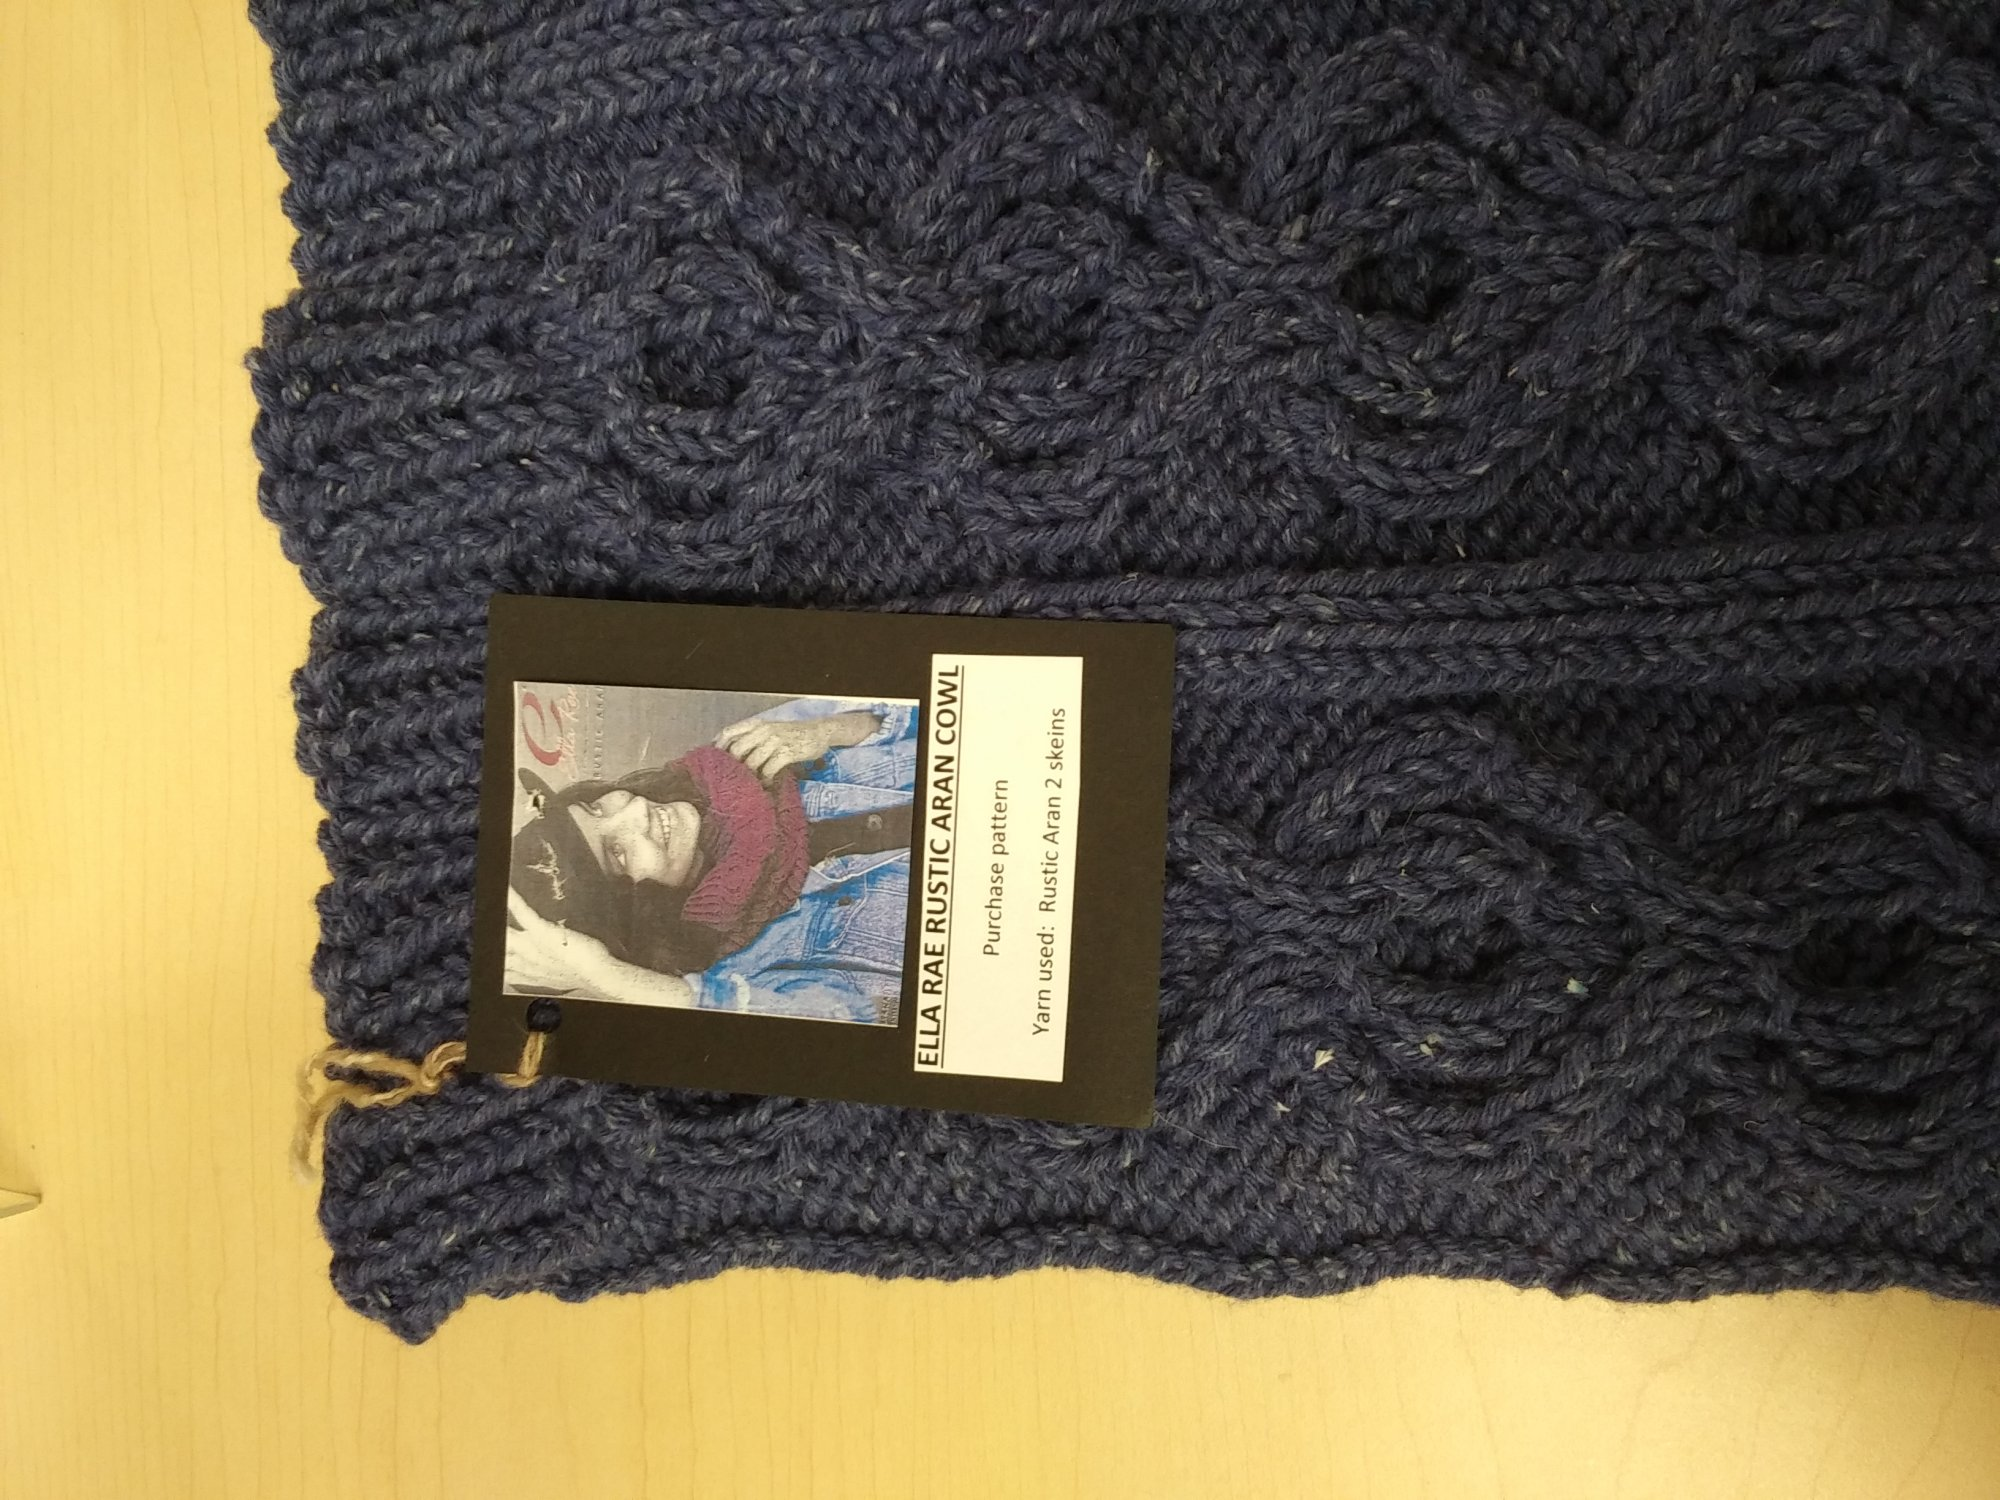 Sample - KN Rustic Aran Cowl - CO 5/14/19